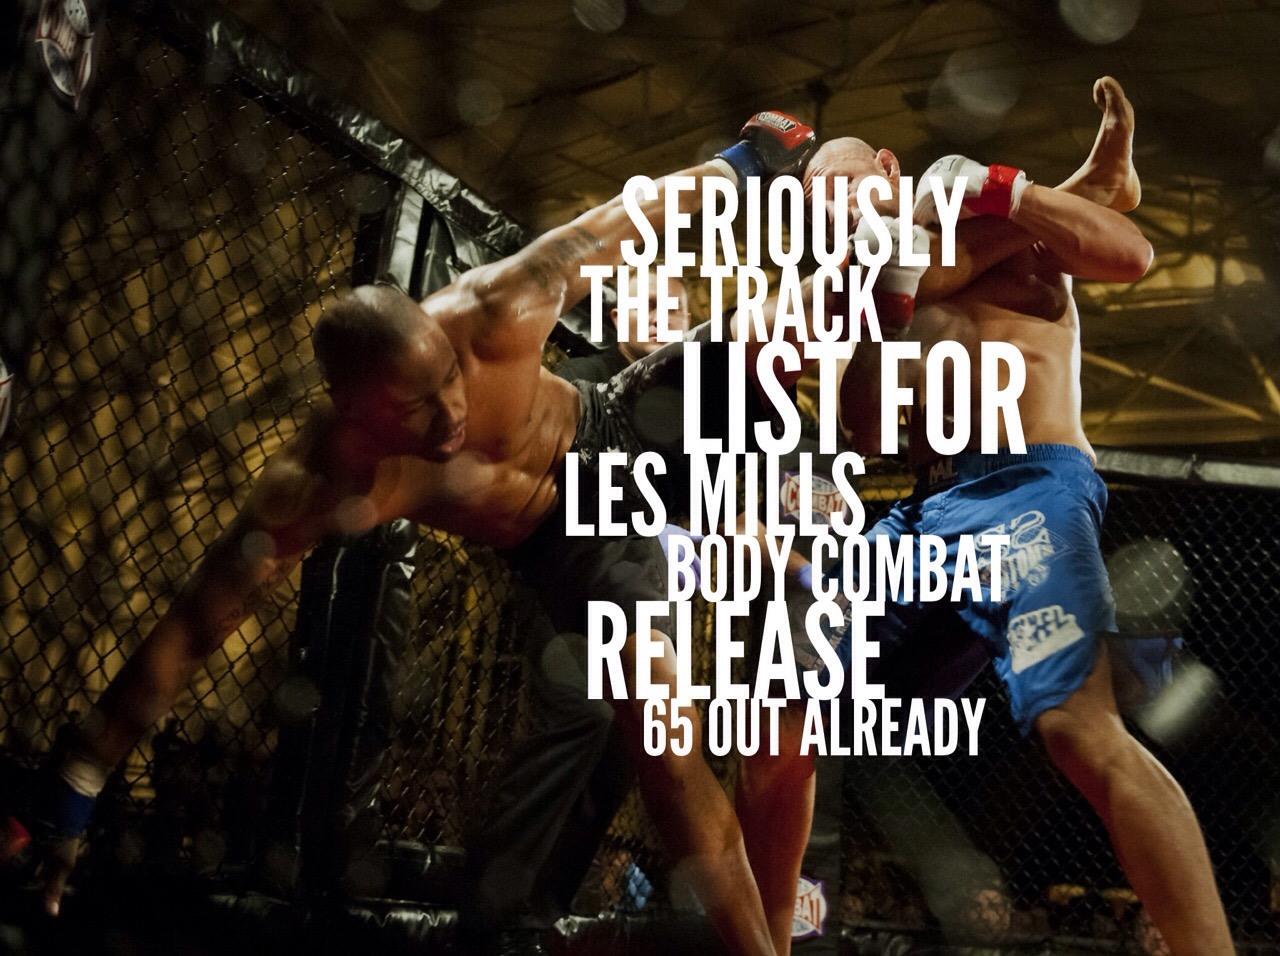 Seriously! The Tracklist for Les Mills Body Combat release